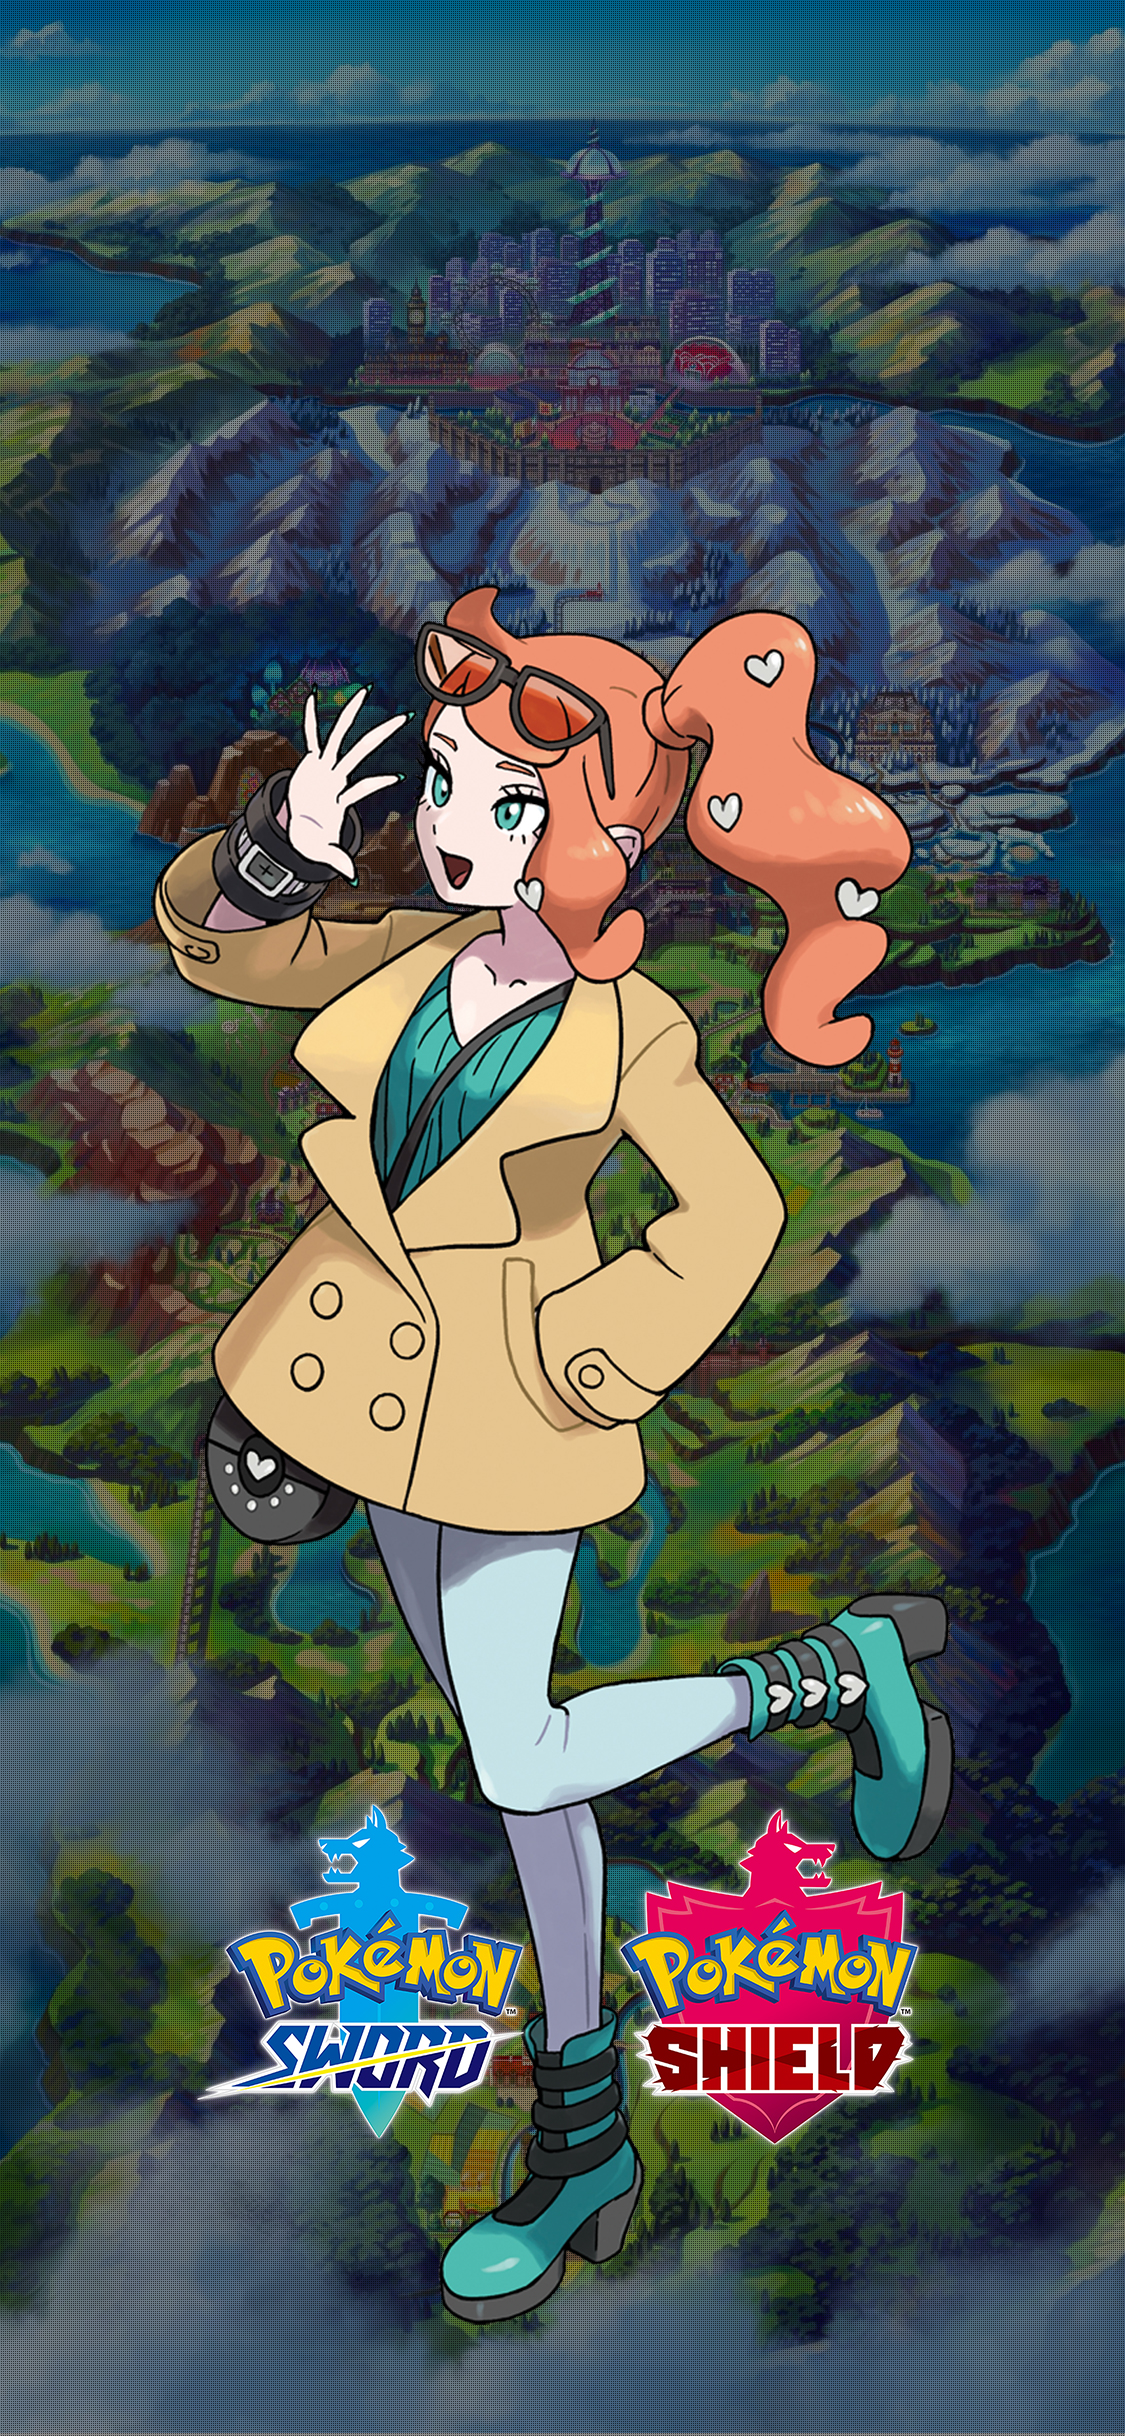 Pokemon Sword And Shield Sonia Wallpapers